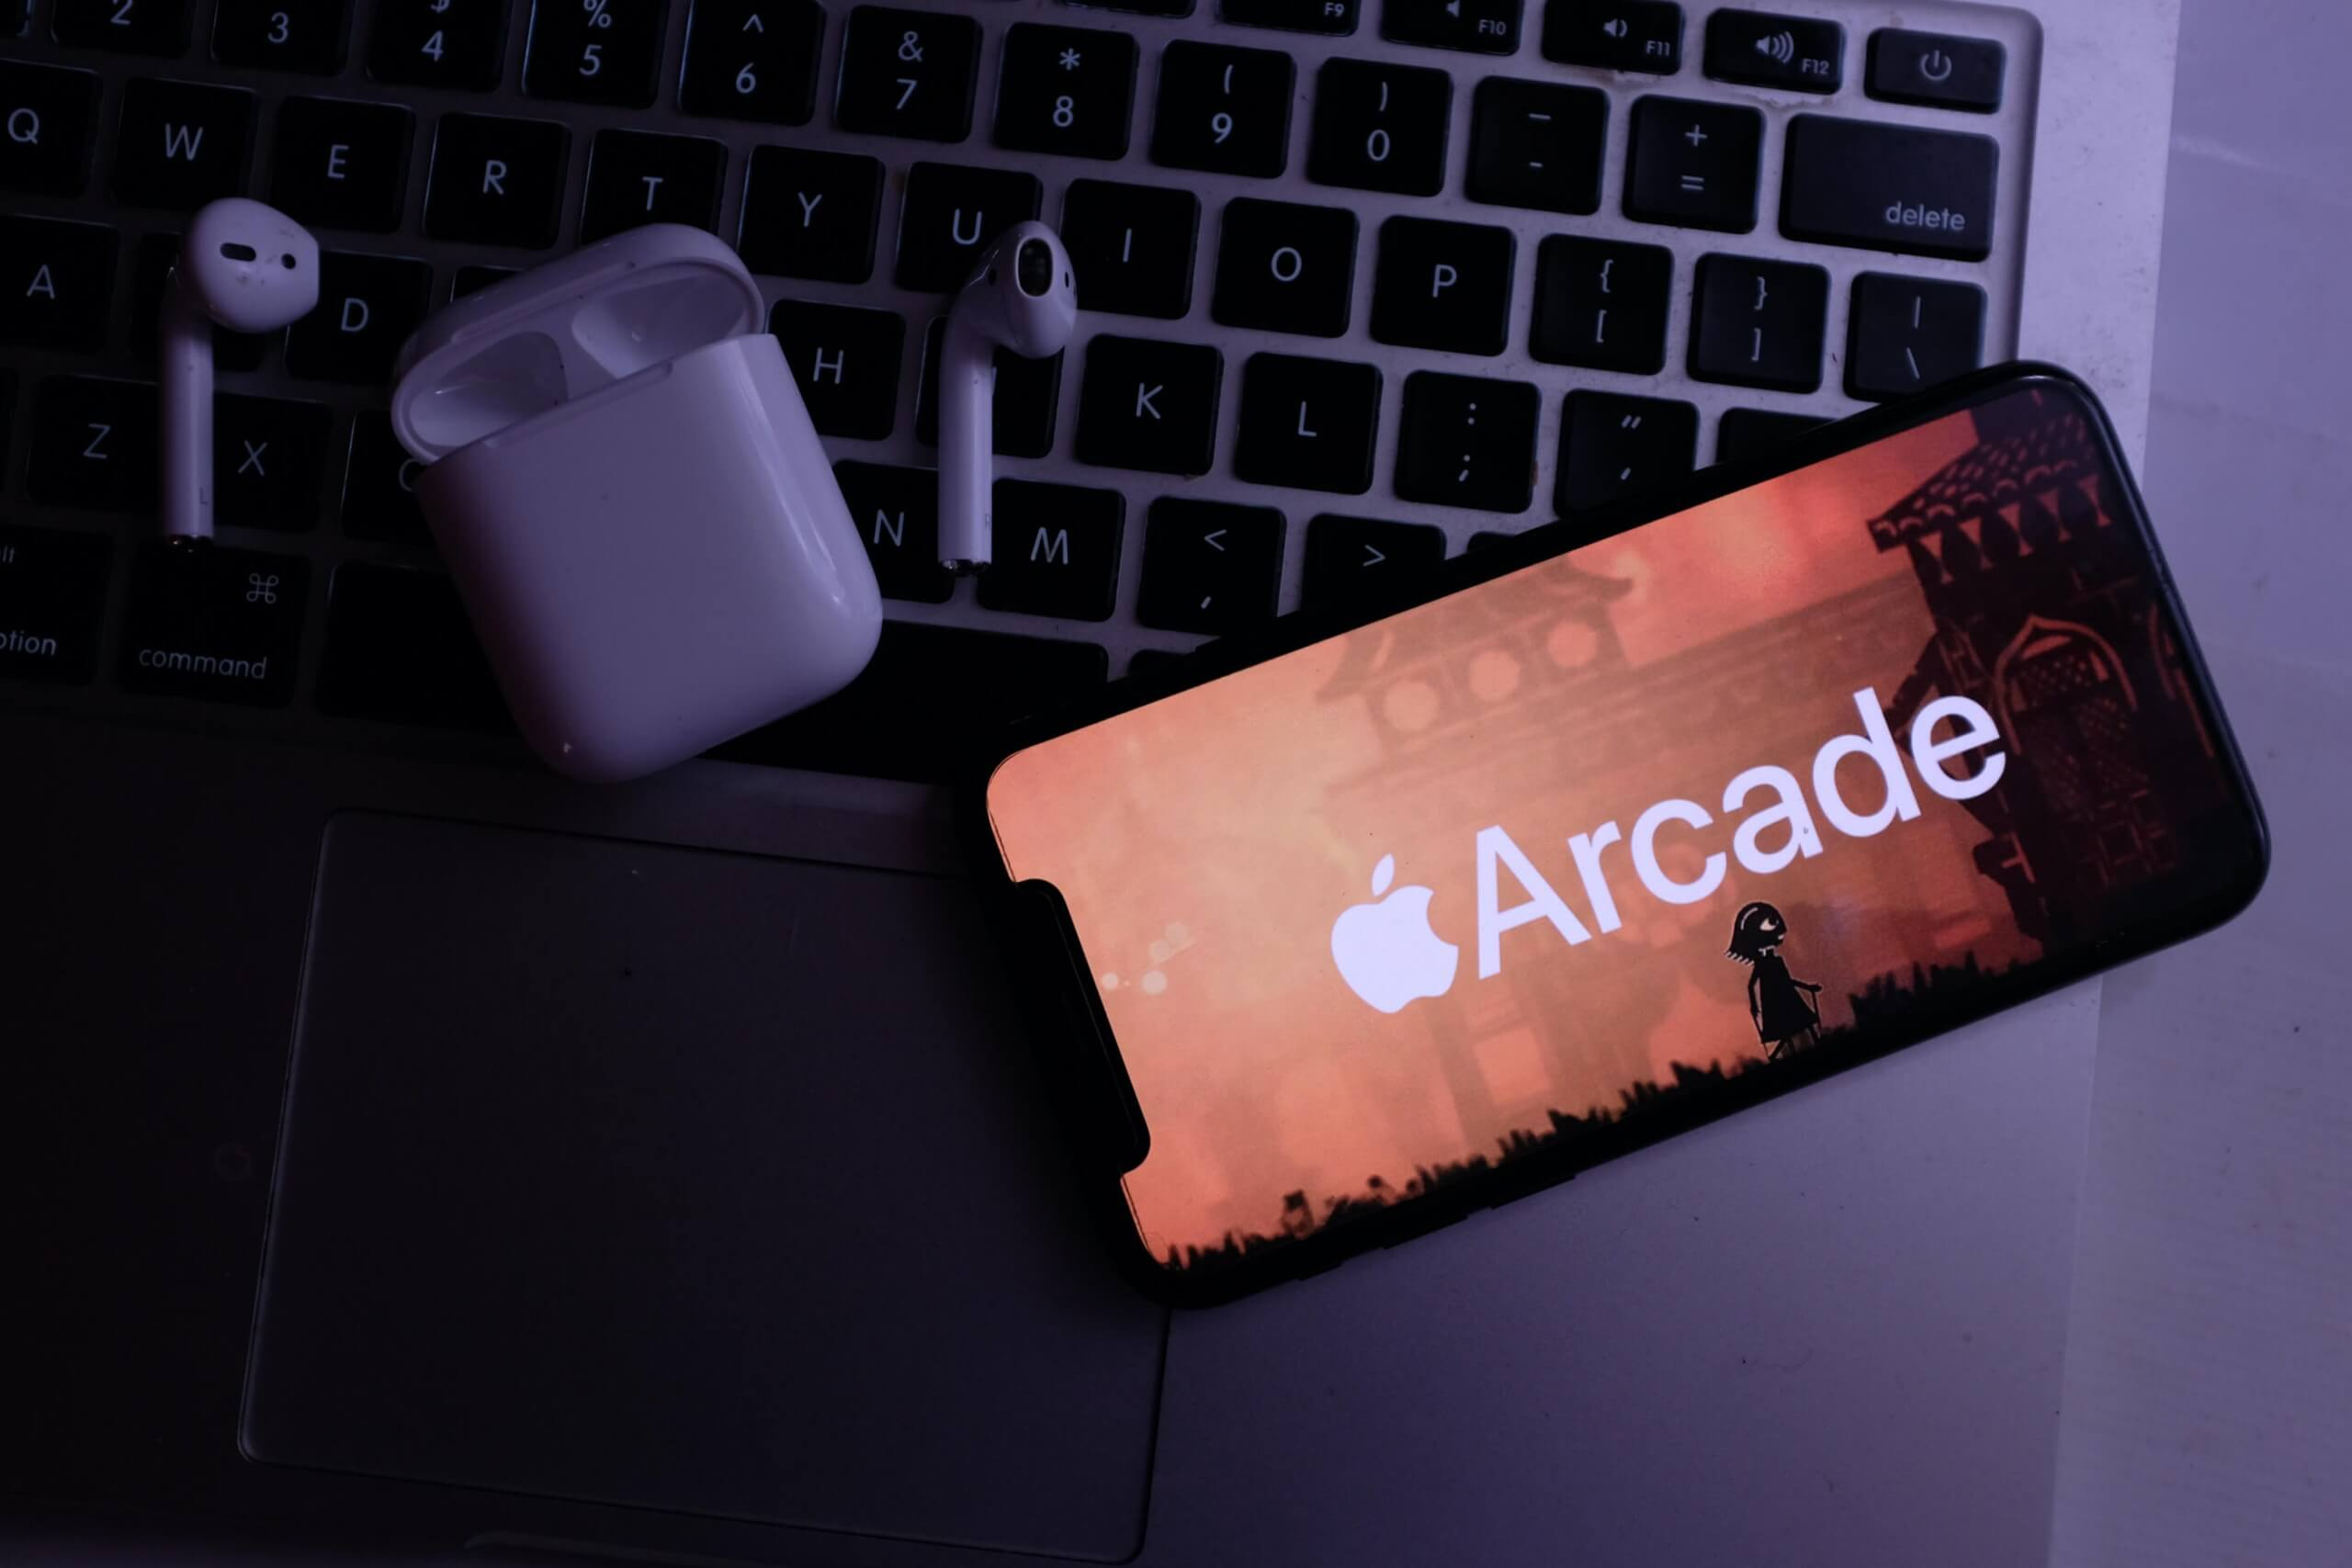 It's been eight weeks since Apple Arcade received a new game